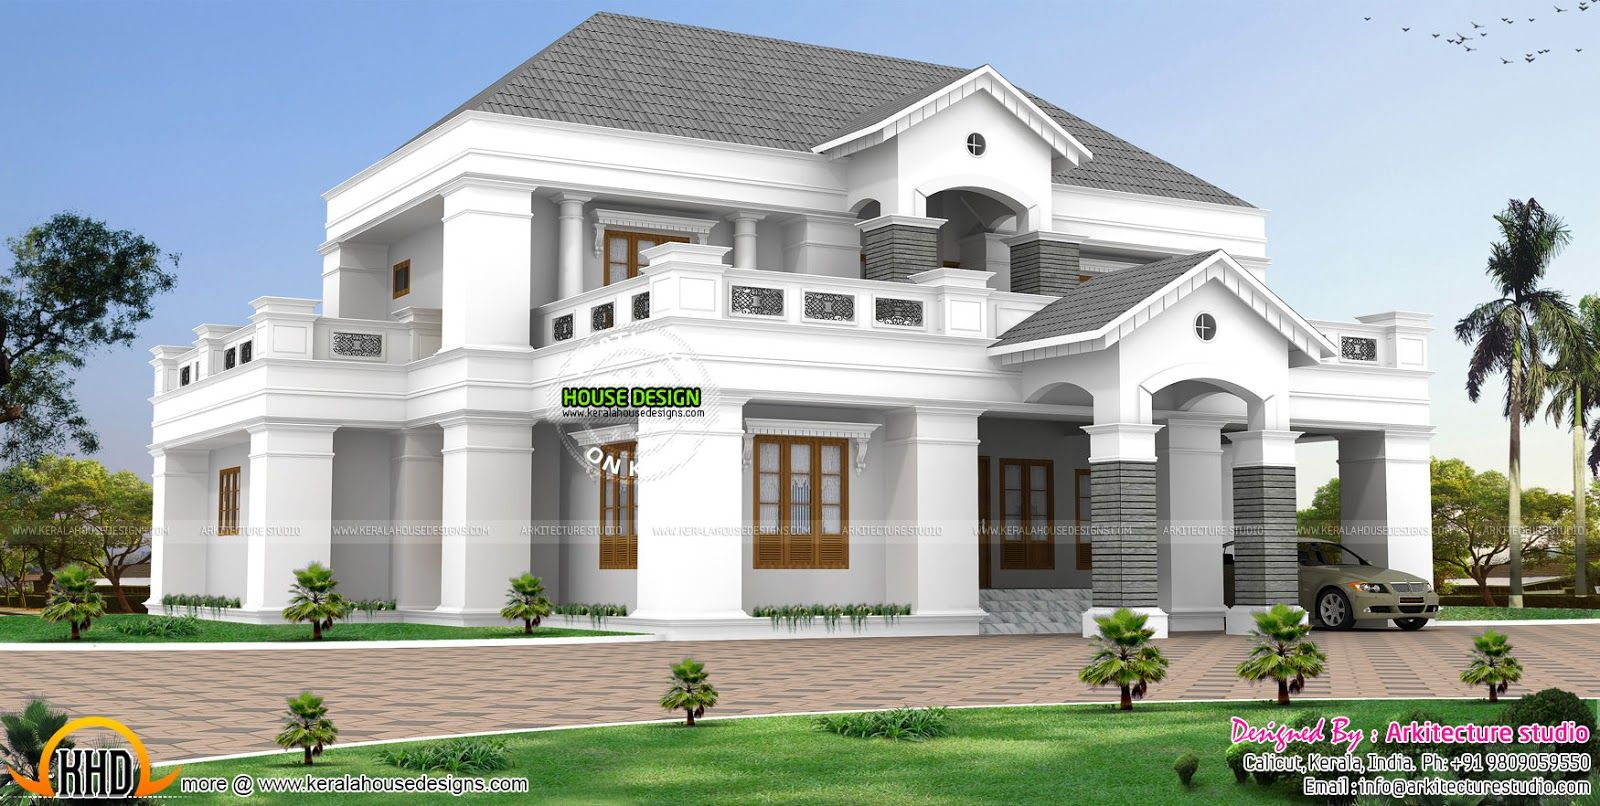 Luxurious pillar type home design kerala home design floor plans